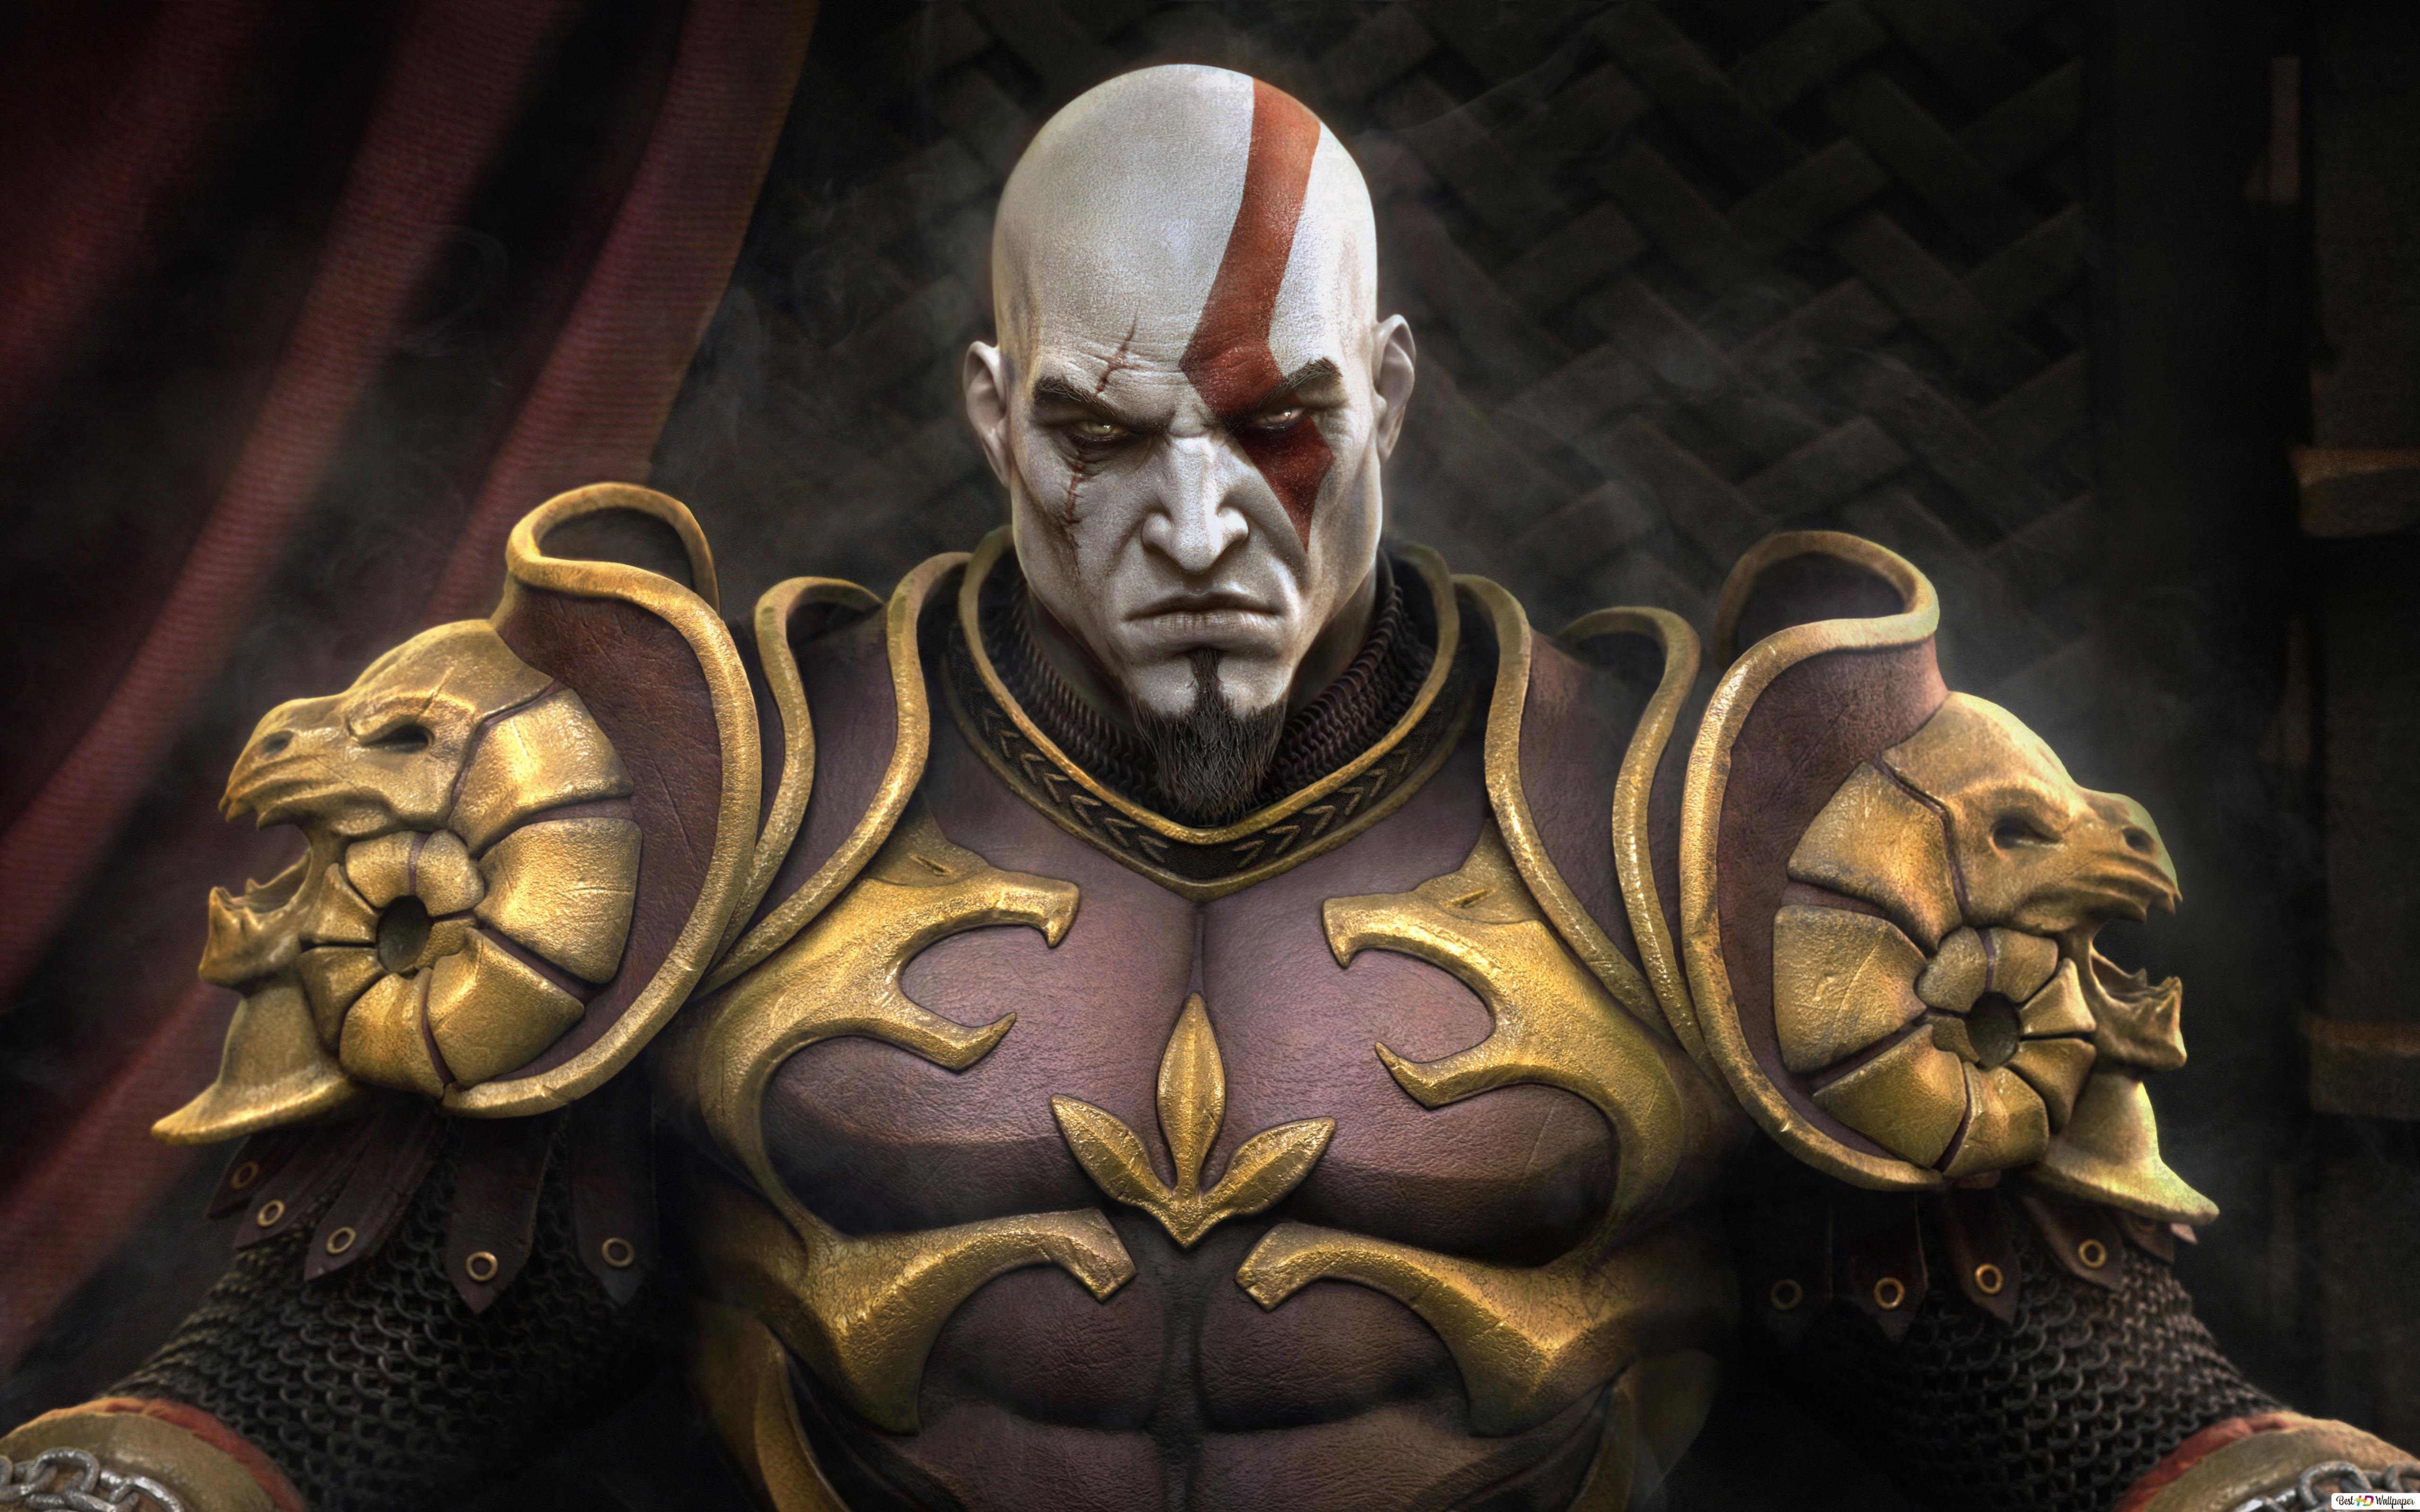 God of War game - Kratos Armor HD wallpaper download